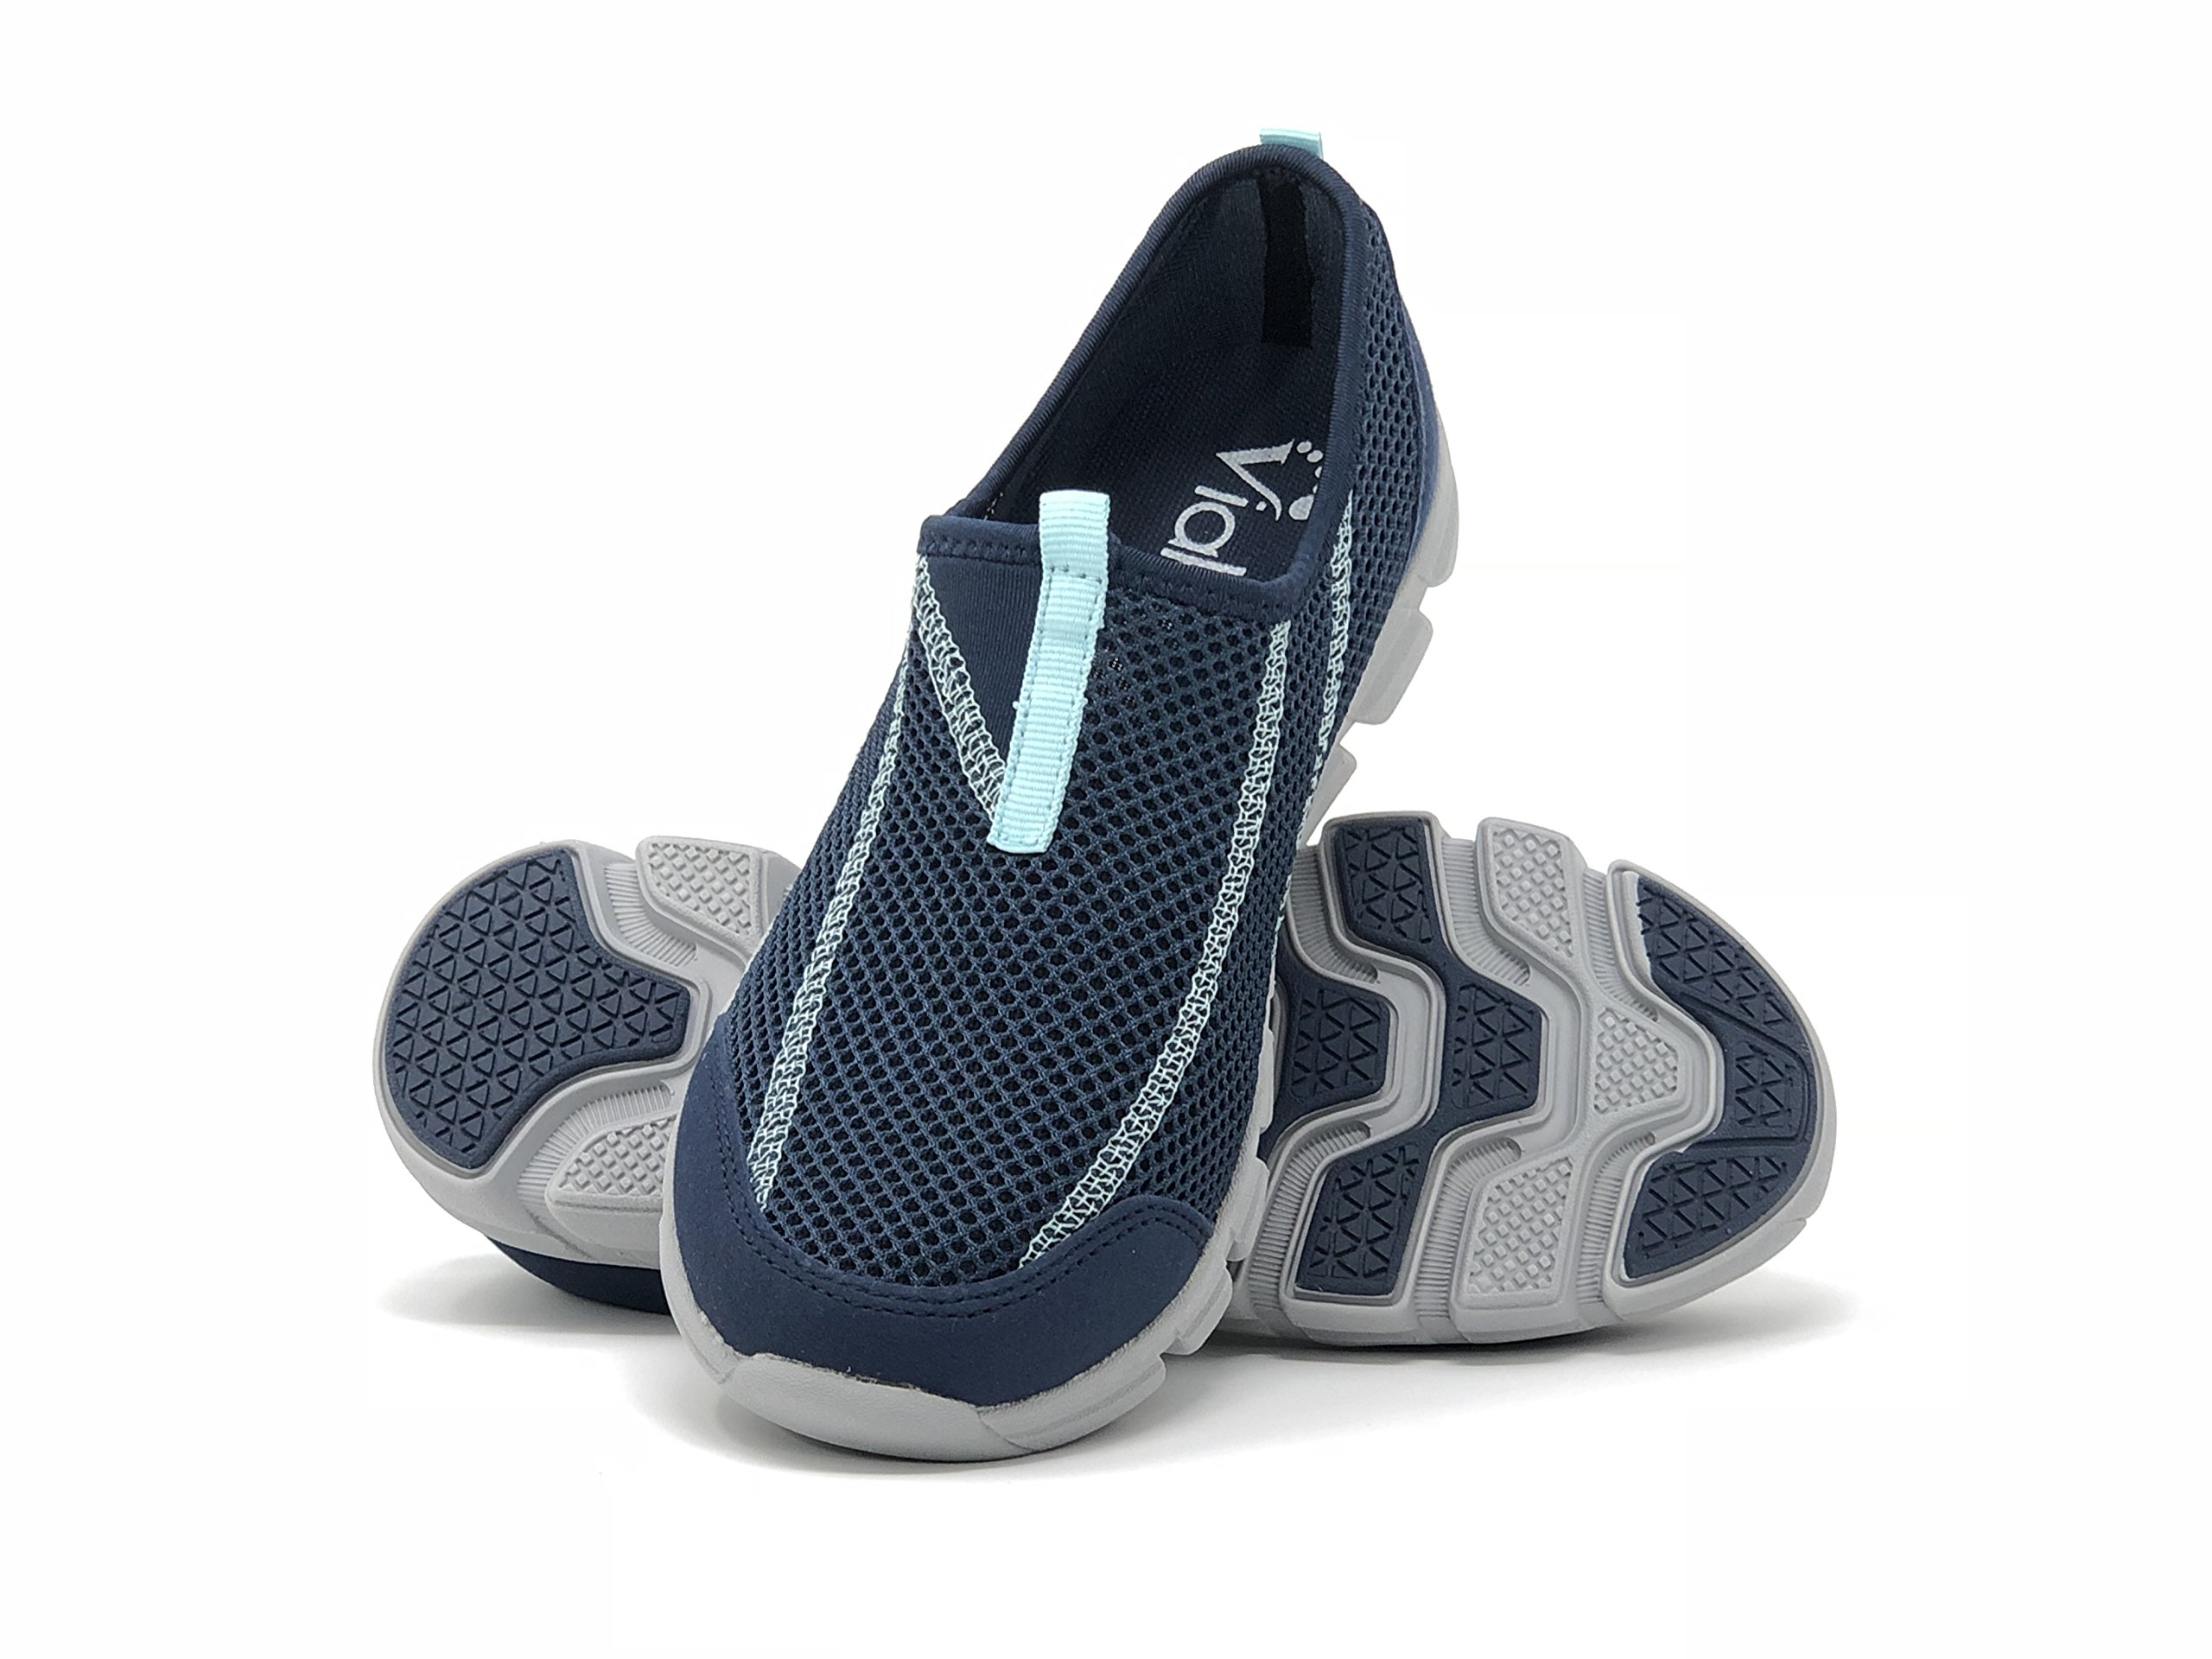 70df0b605030 Best Rated in Women s Water Shoes   Helpful Customer Reviews ...